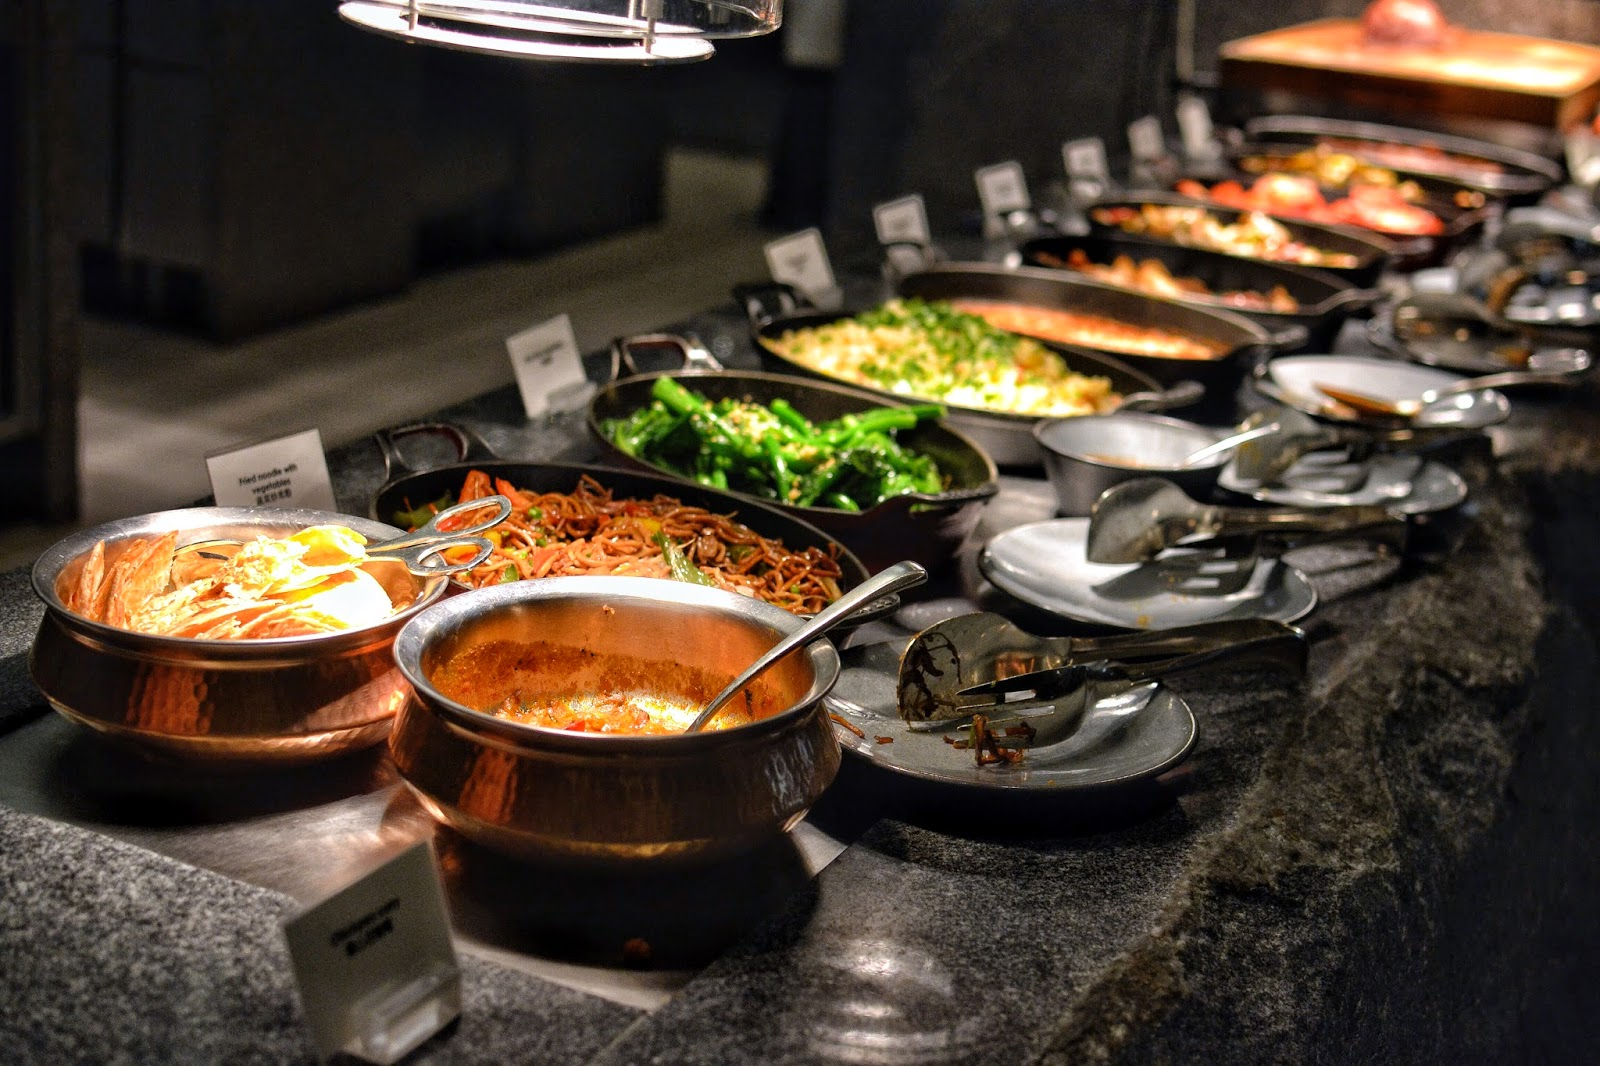 The MGM Grand Buffet is always unpredictable, and you may get in on days when the food is fantastic and the service is actually quick! To learn more about MGM Grand Buffet, visit their website at steam-key.gq